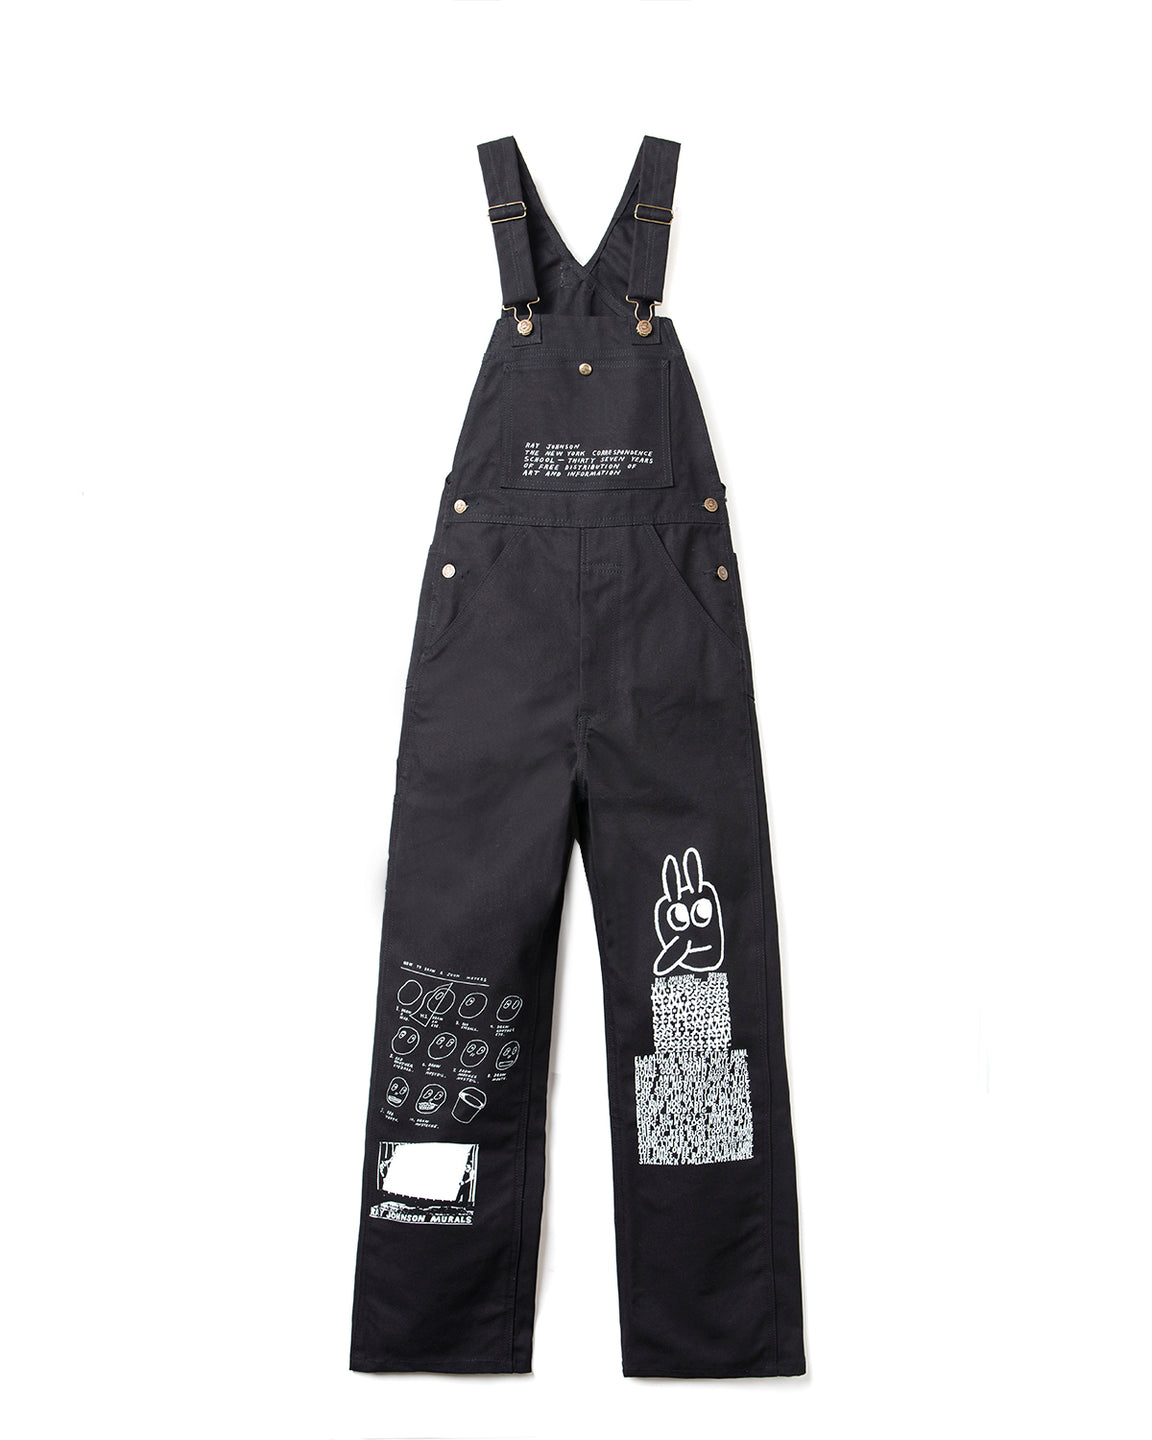 Ray Johnson Estate x Brain Dead Overalls - Black